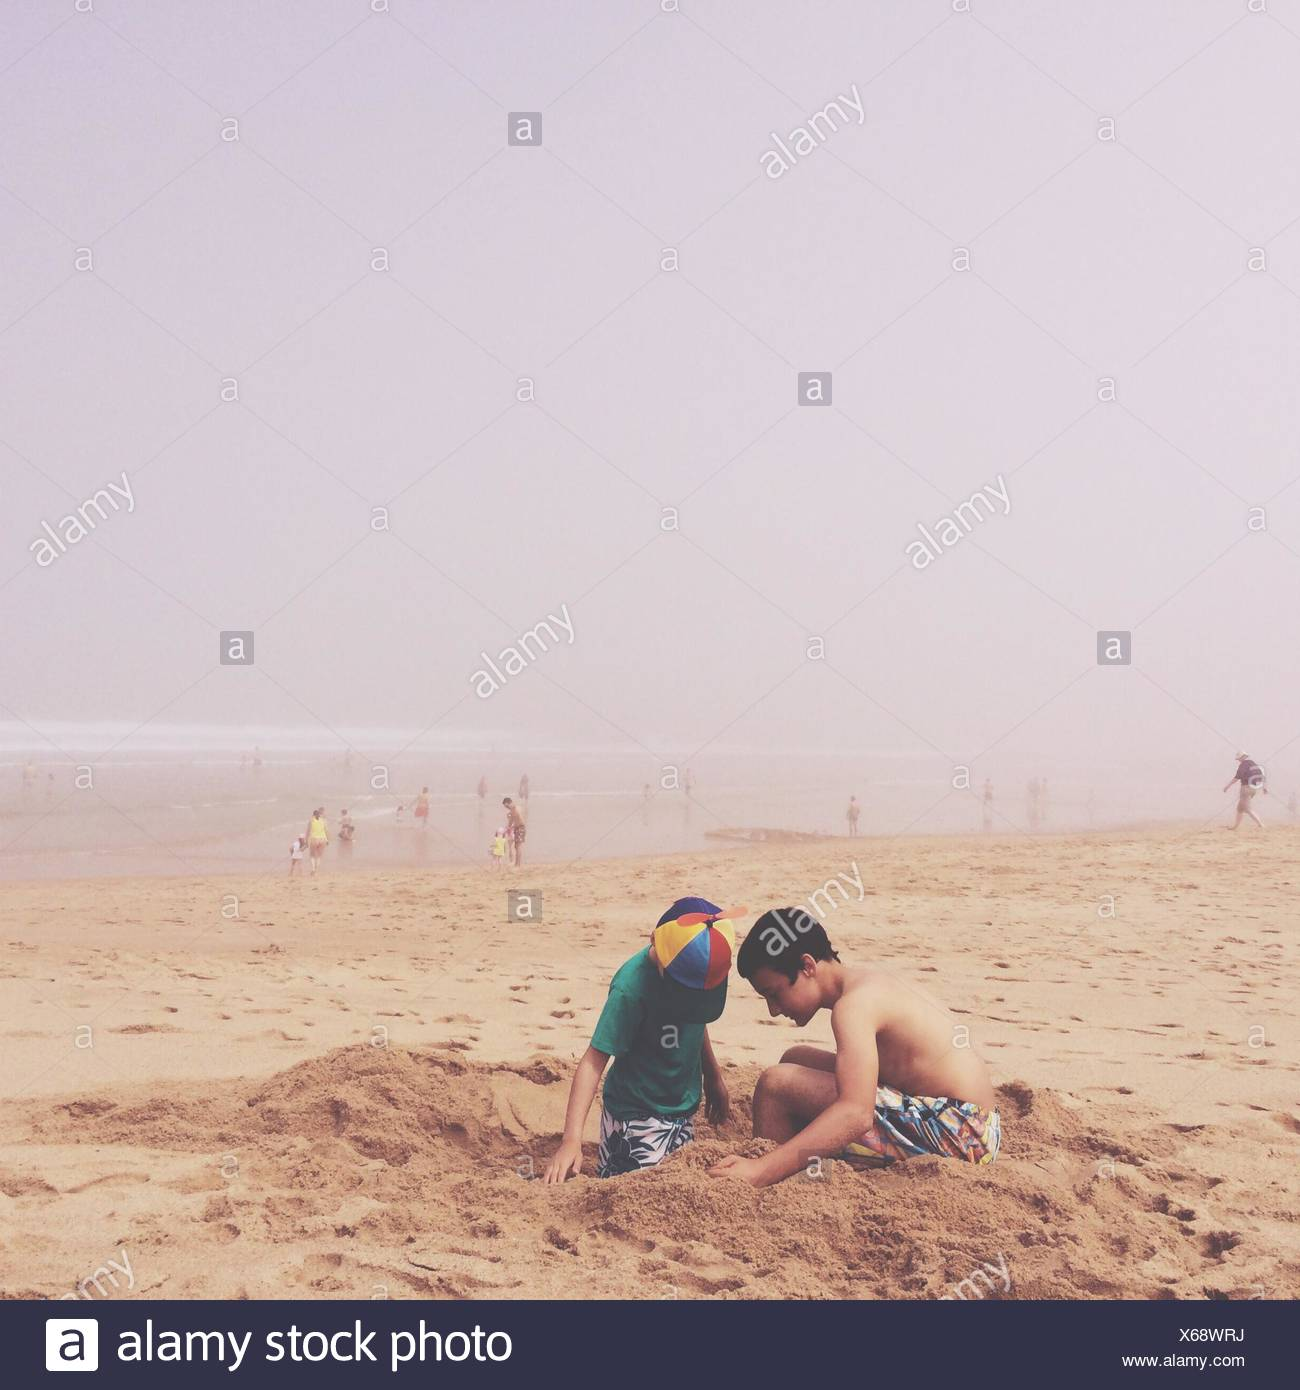 Two Boys Playing With Sand On Beach - Stock Image